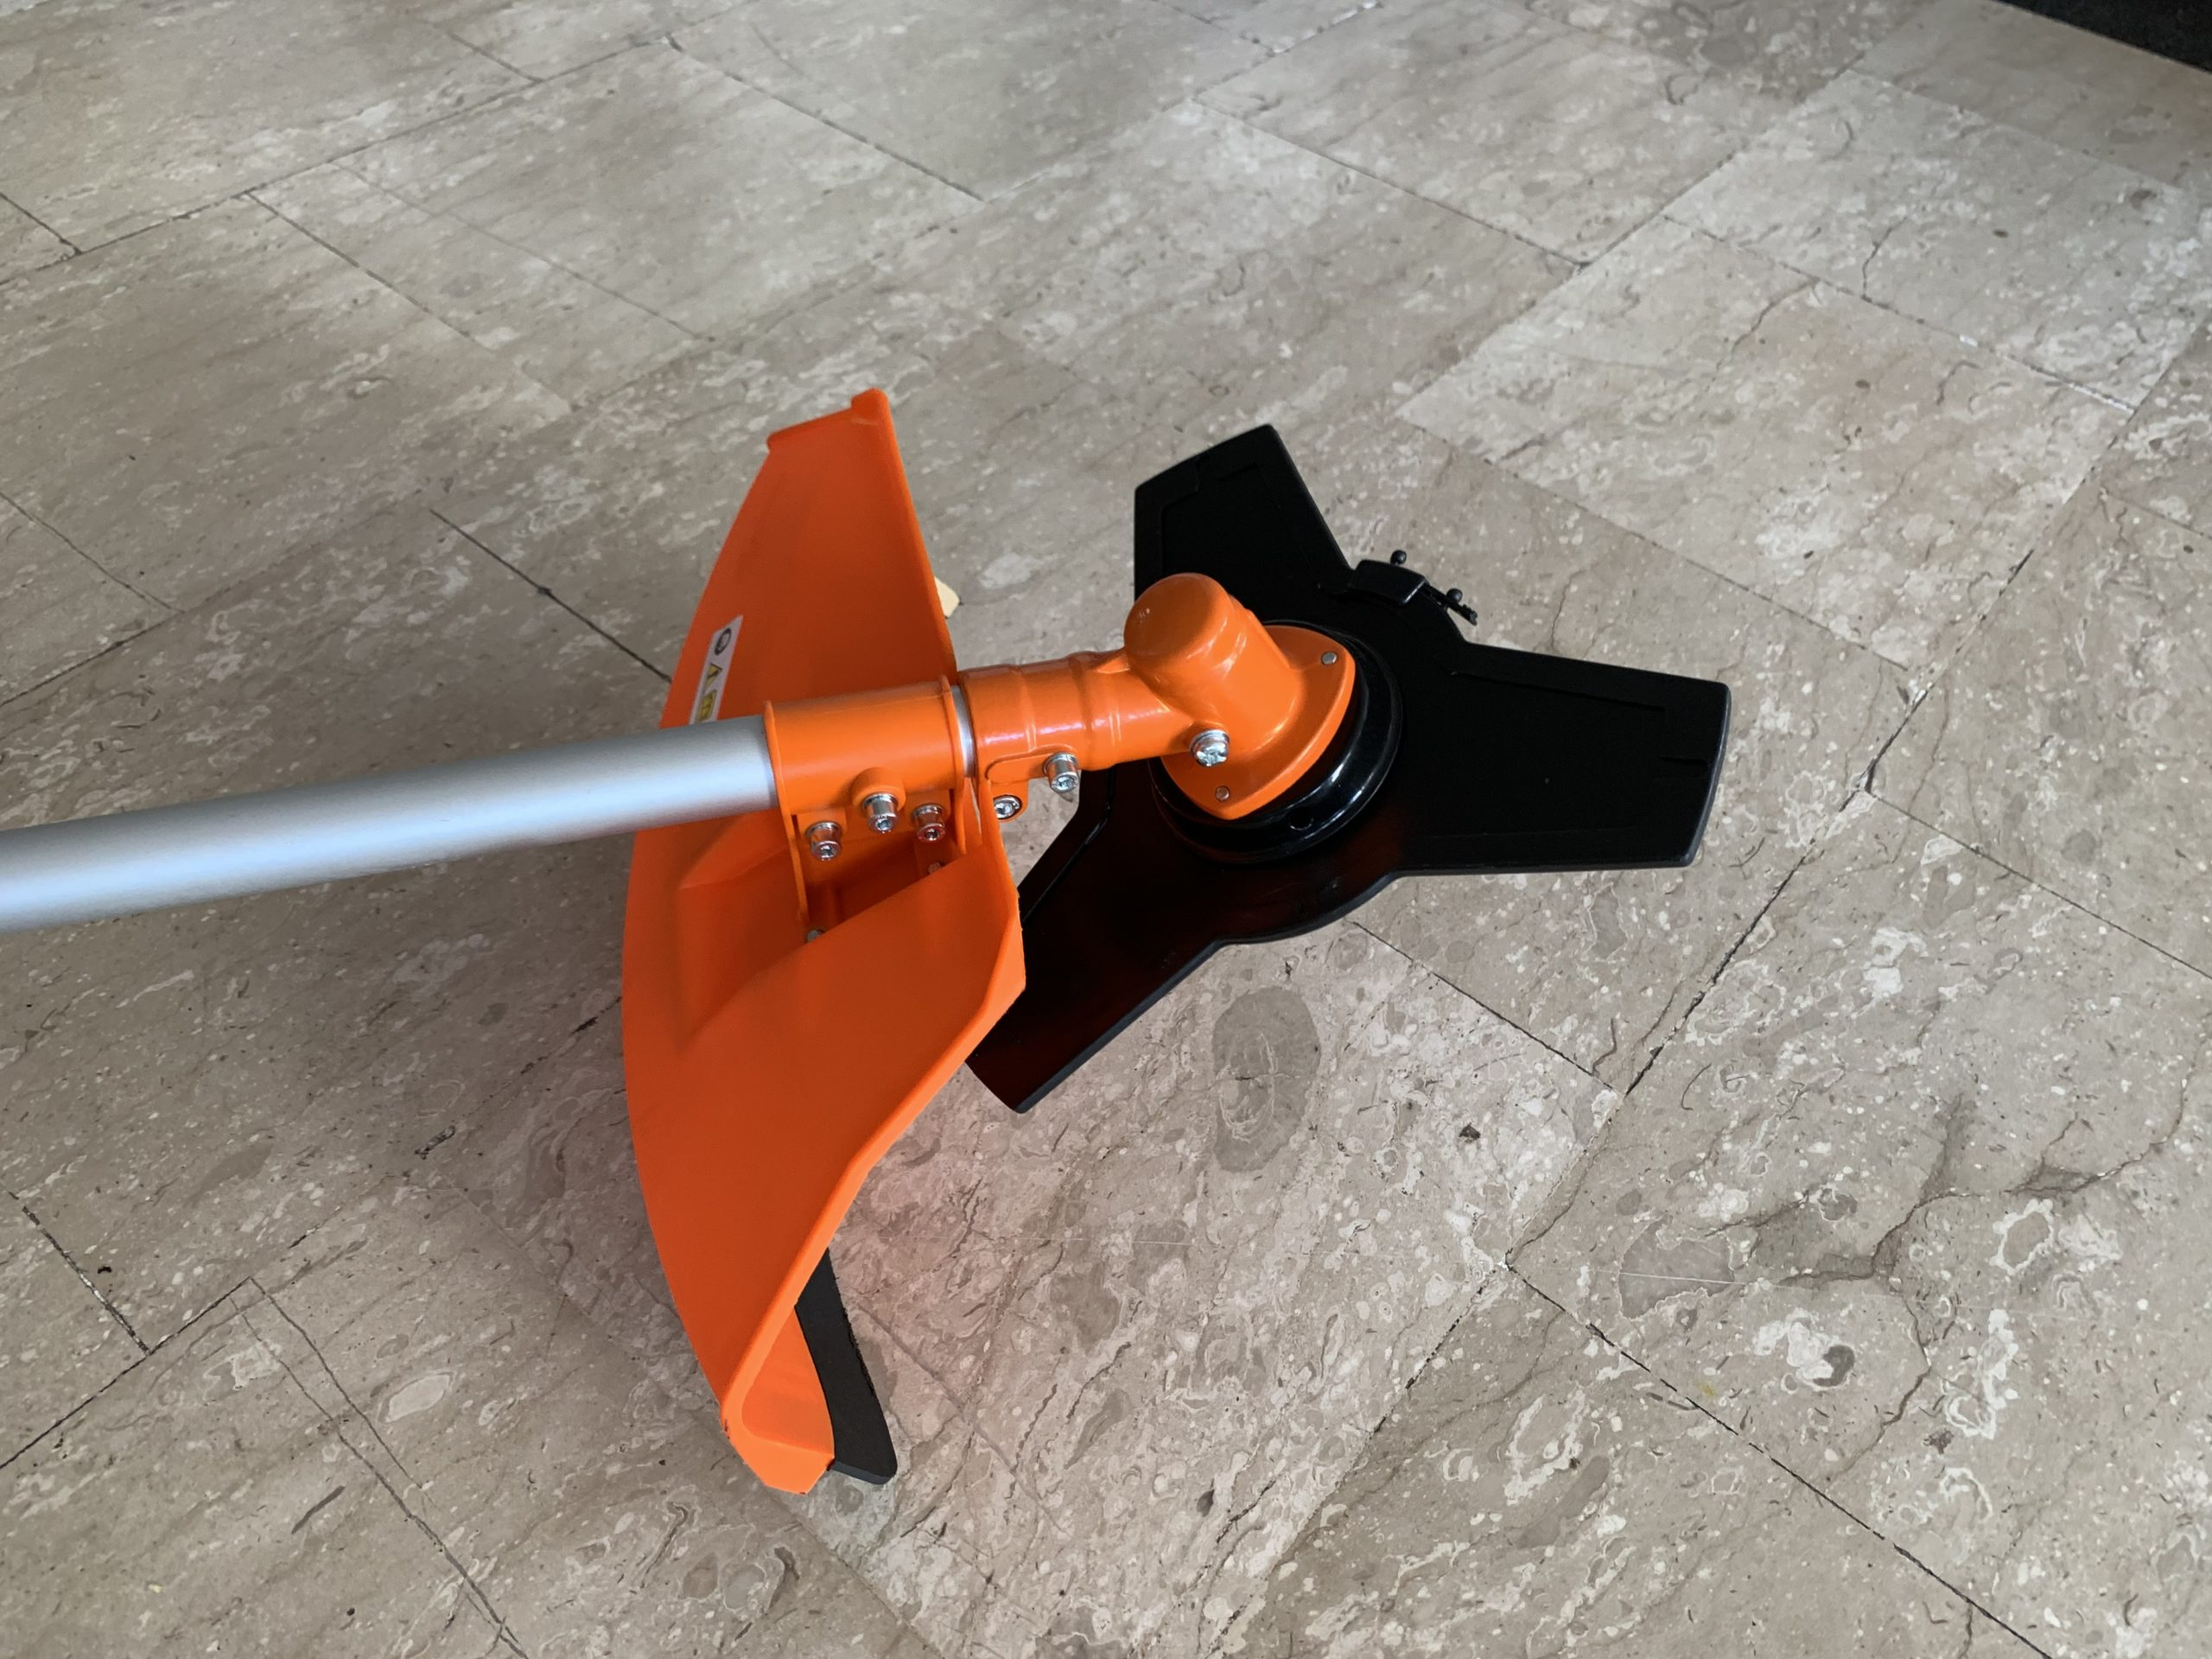 DECESPUGLIATORE MARCA AXO MODELLO GLDCSG431 (NEW MODEL 2020 ORANGE)